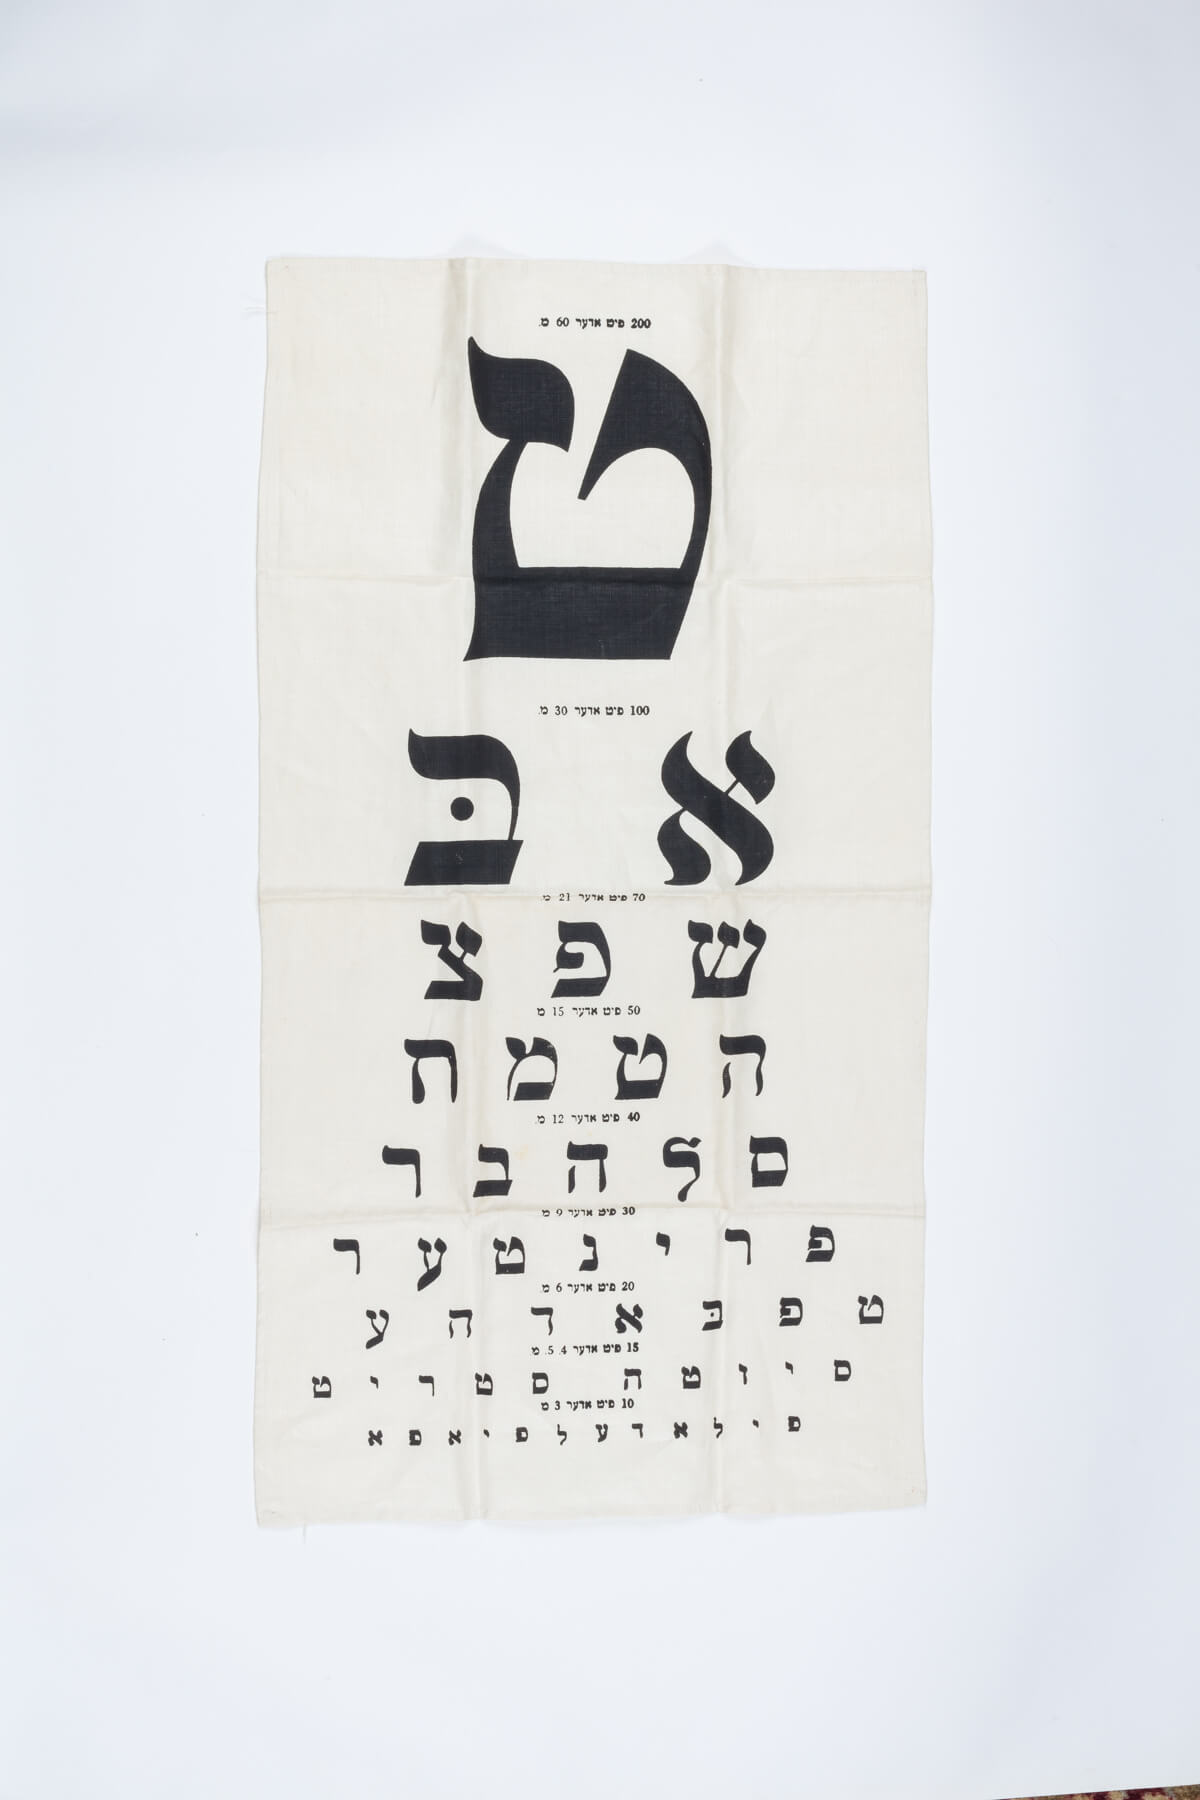 052. A Vintage Yiddish Eye Chart